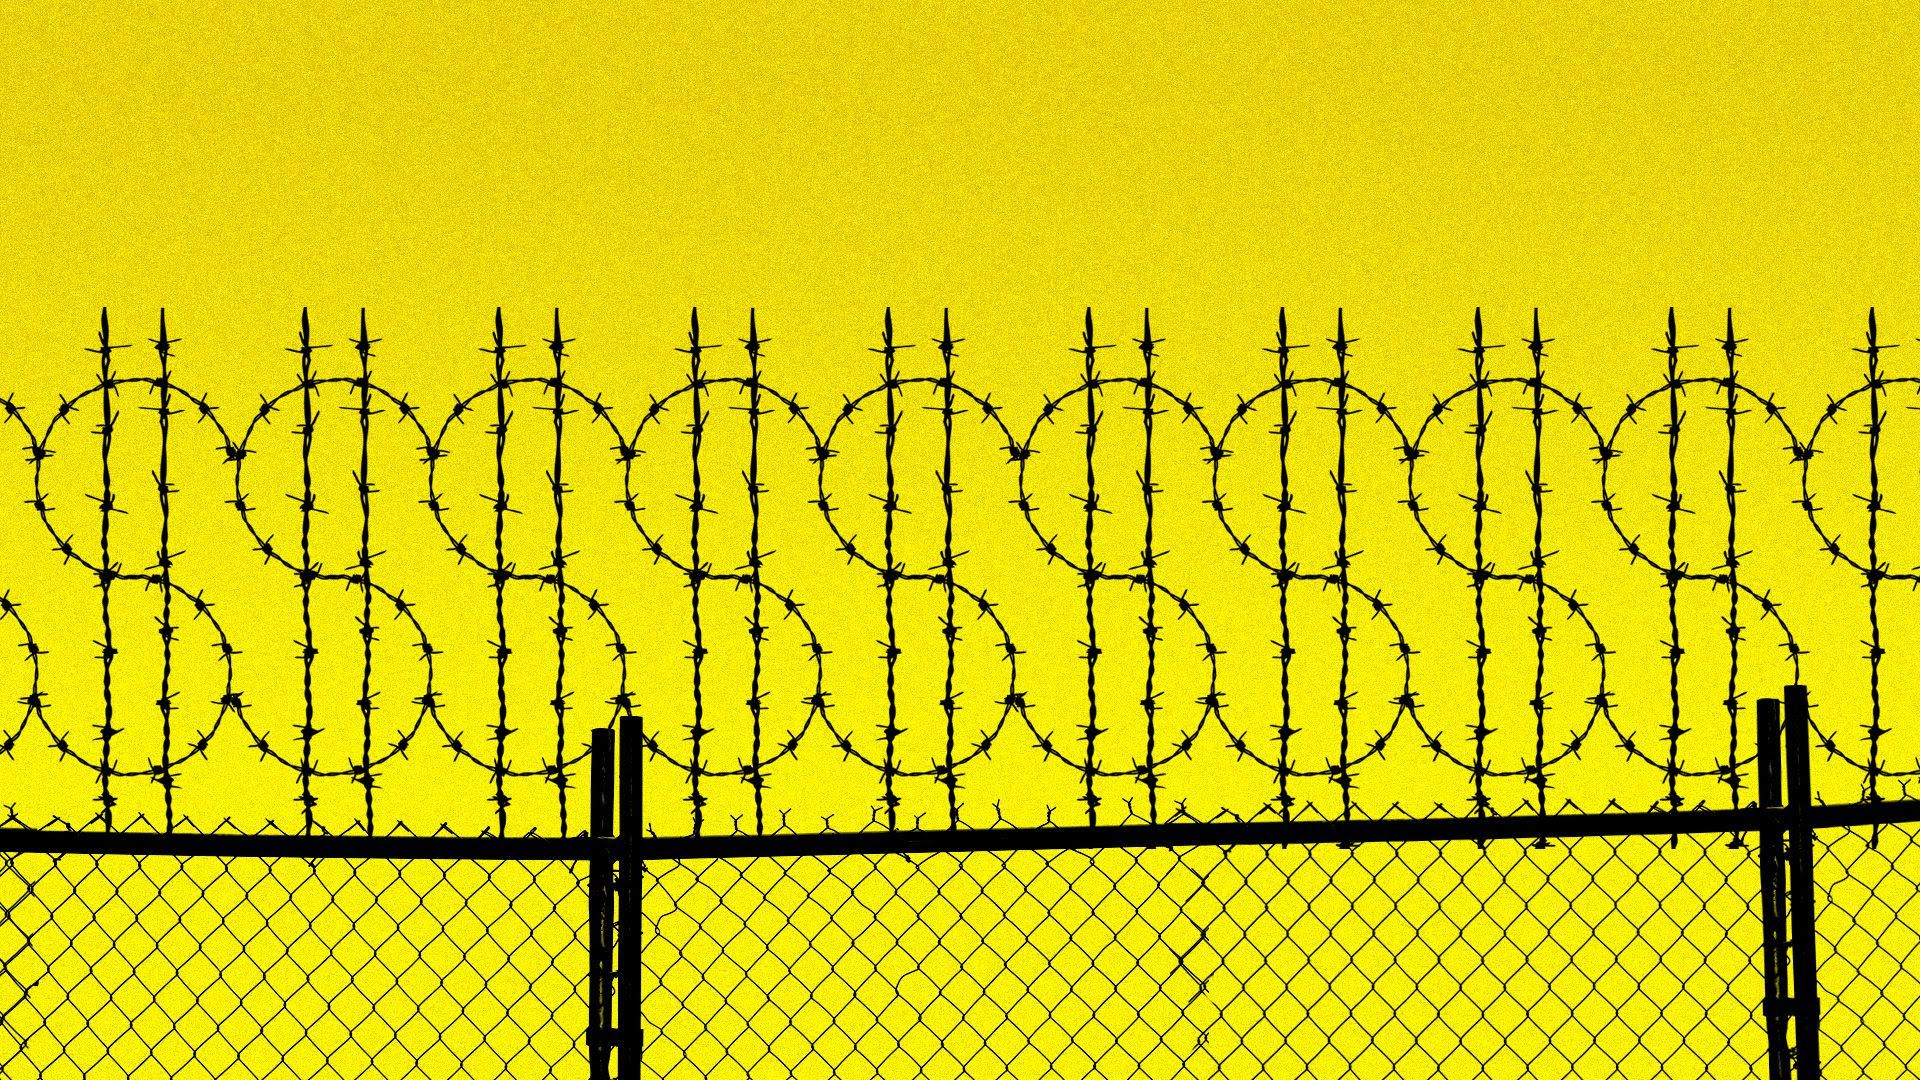 A prison fence with the fence shaped into dollar signs.